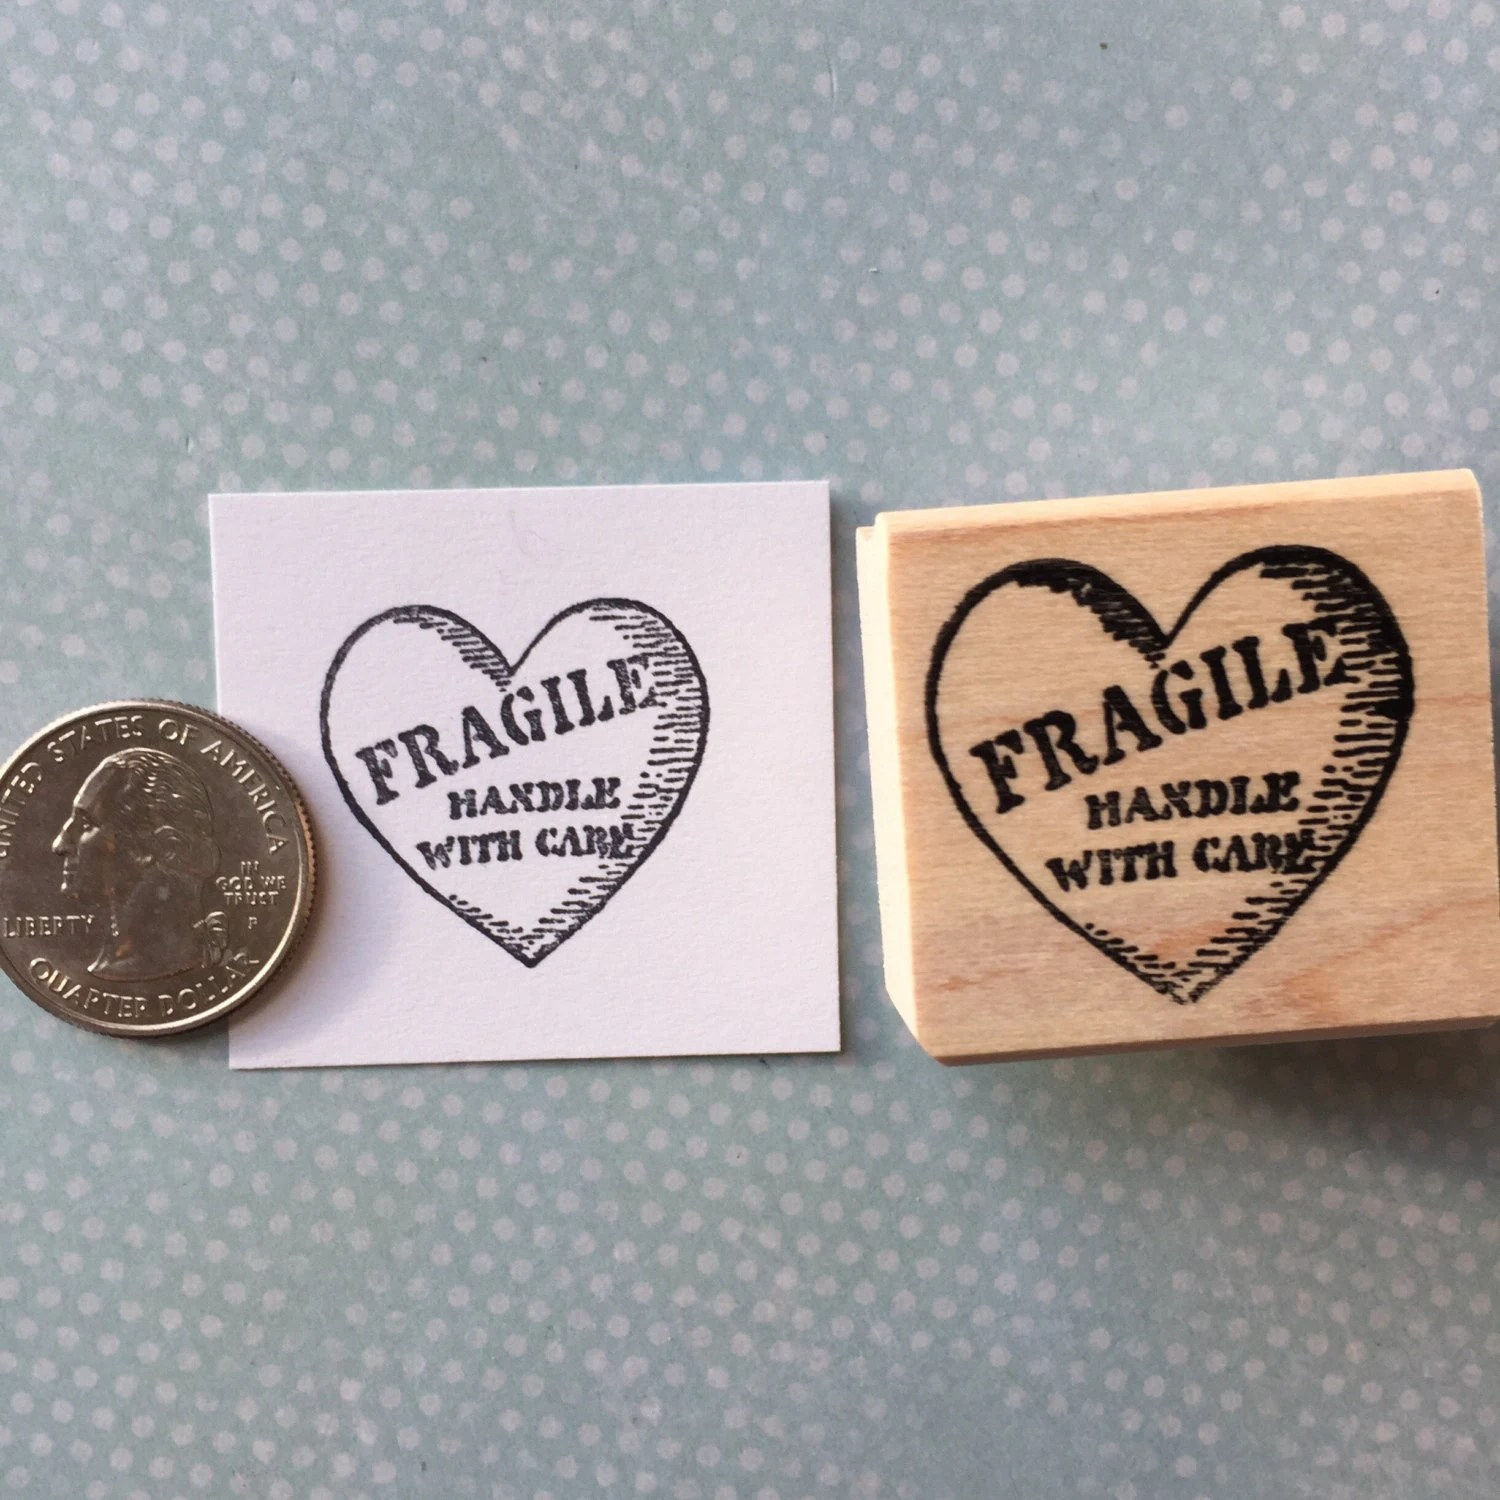 Fragile Heart Handle With Care Rubber Stamp 6358 from ...